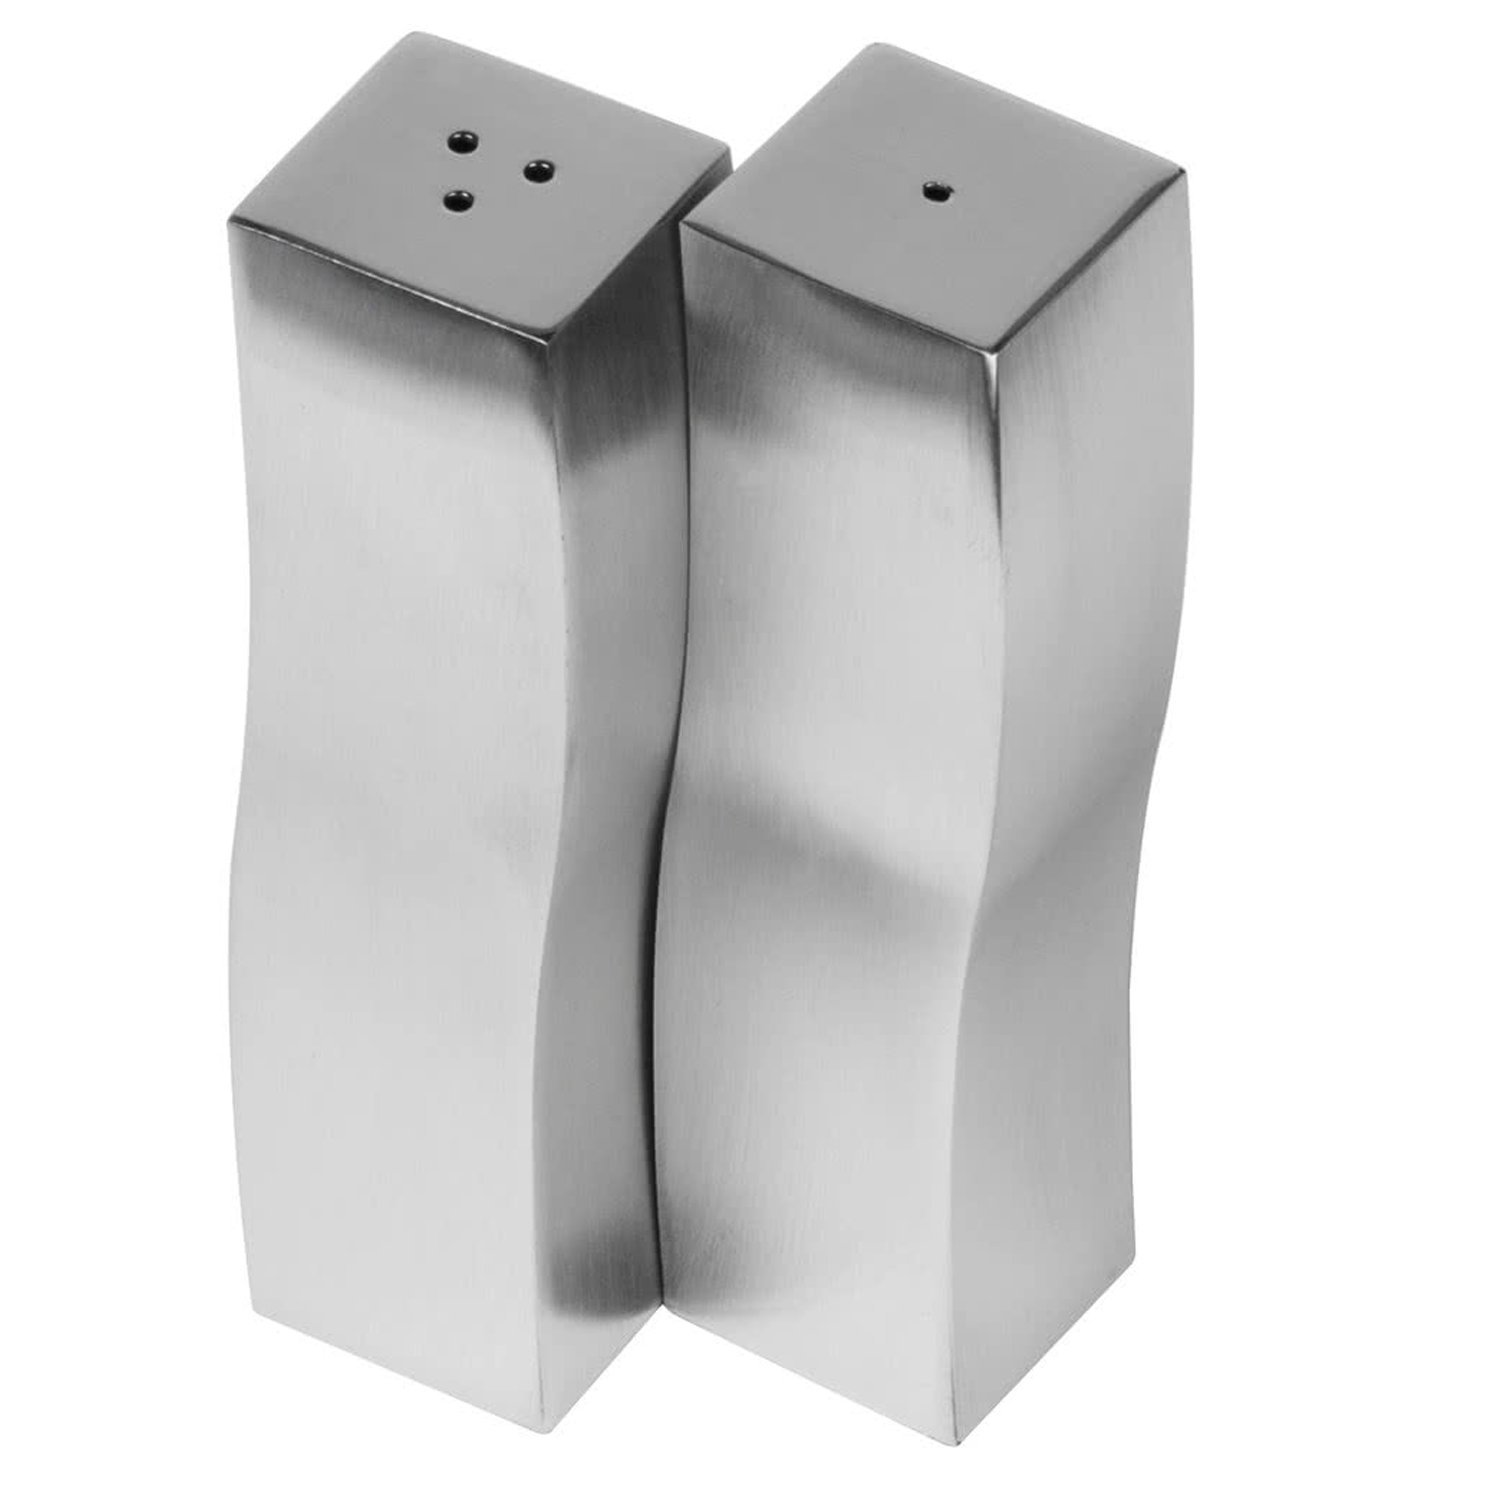 Modern Salt and Pepper Shakers Stainless Steel 4 .oz (Set of 2) Wavy Shape by Culinary Depot (Image #1)